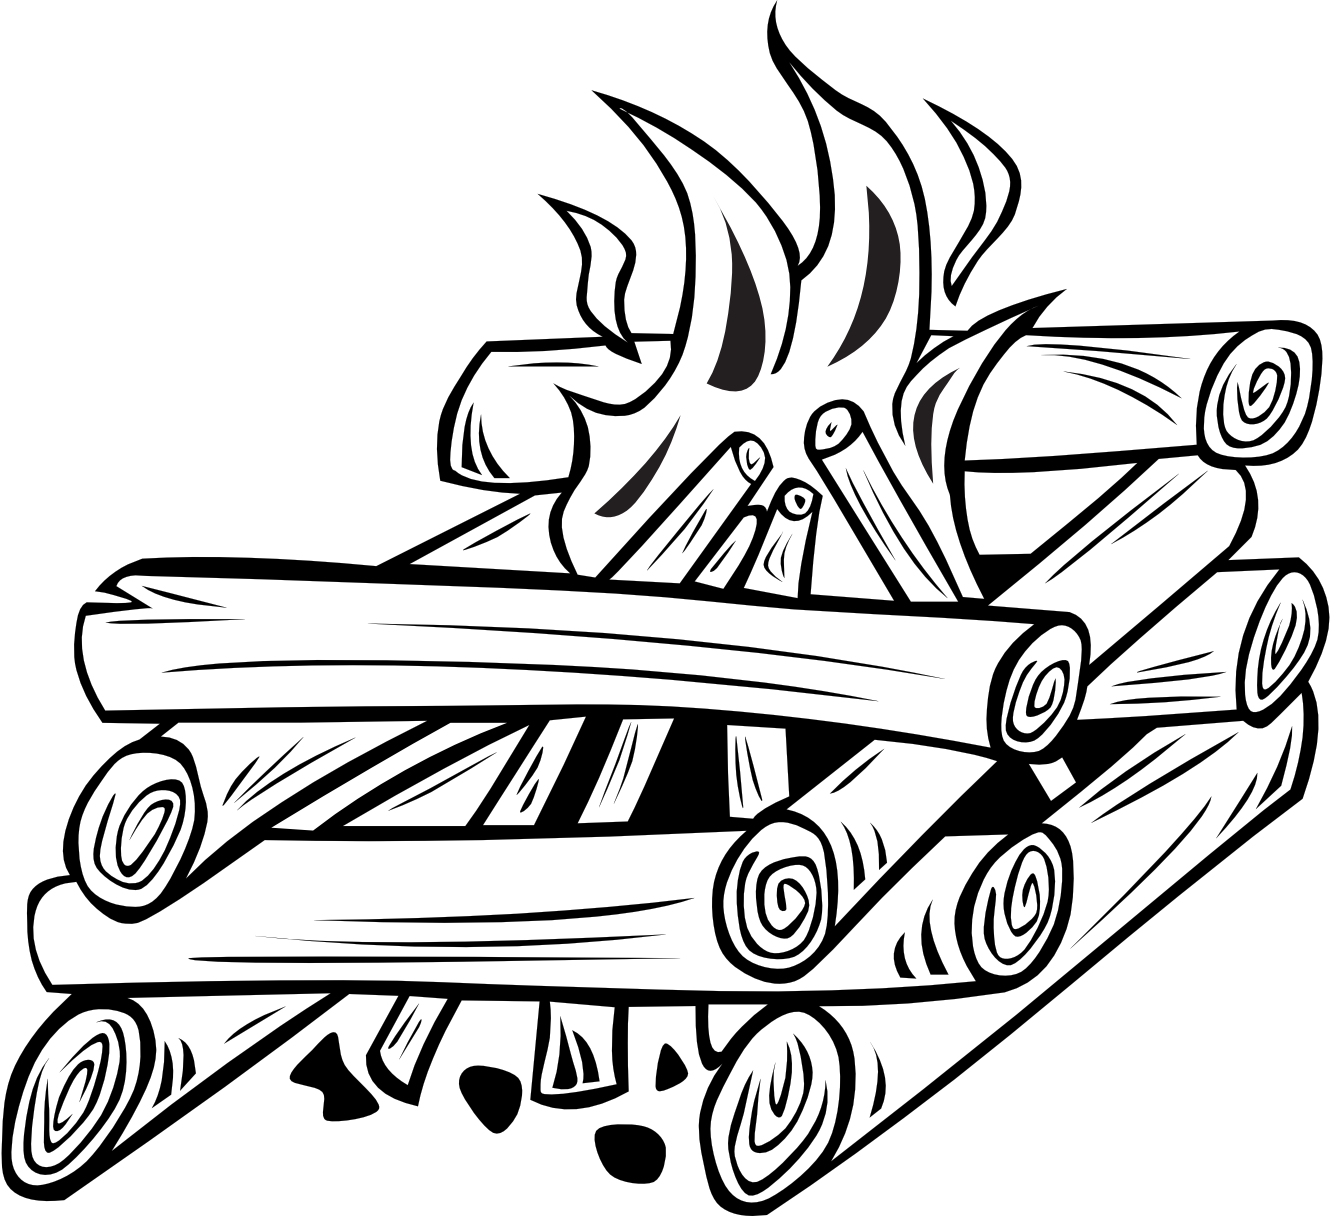 Ds drawing clipart. Cooking black and white